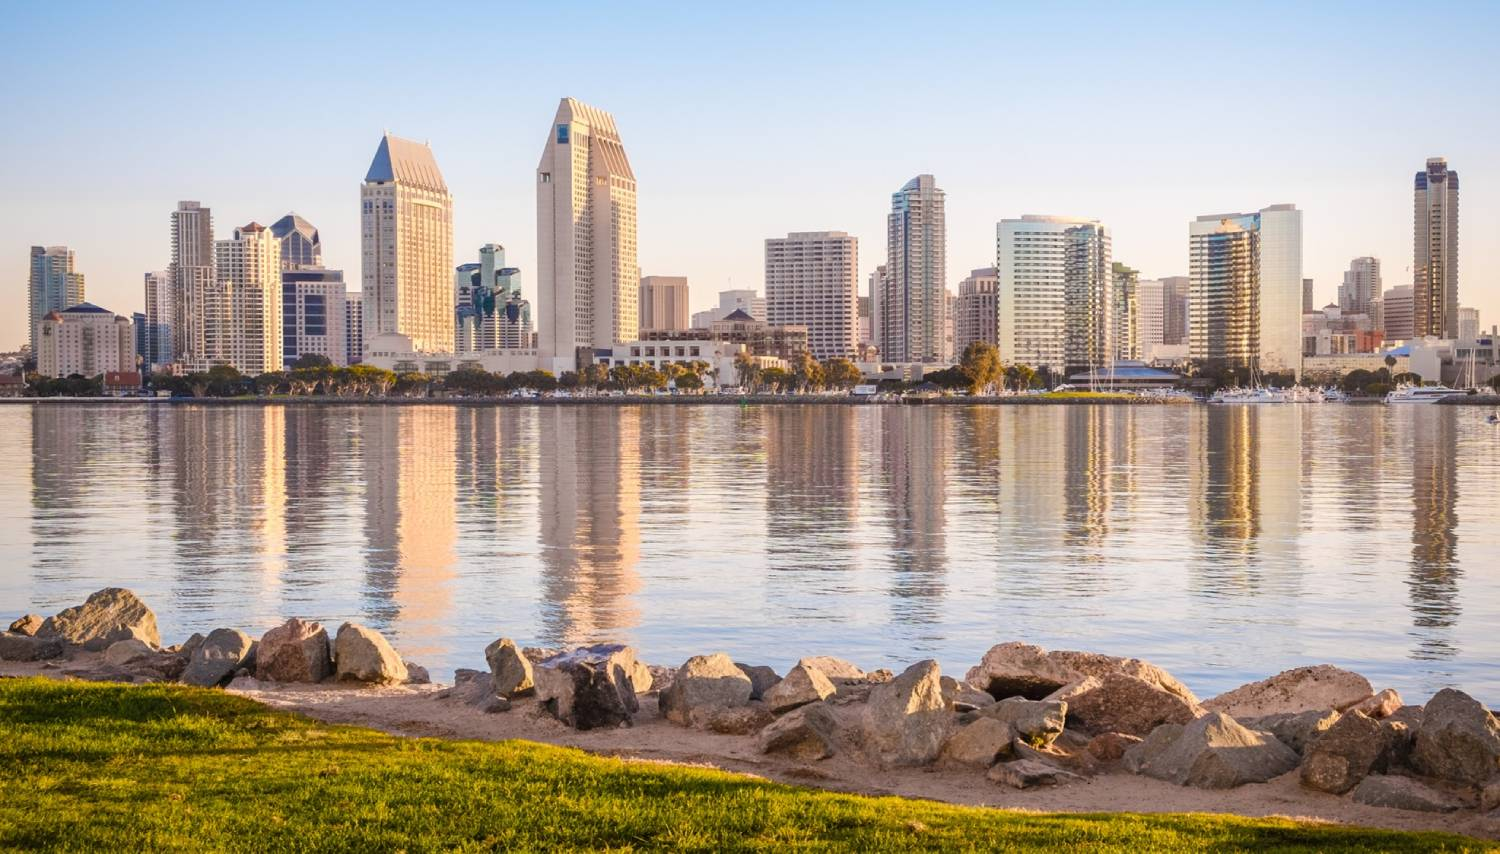 San Diego Harbor - Things To Do In San Diego